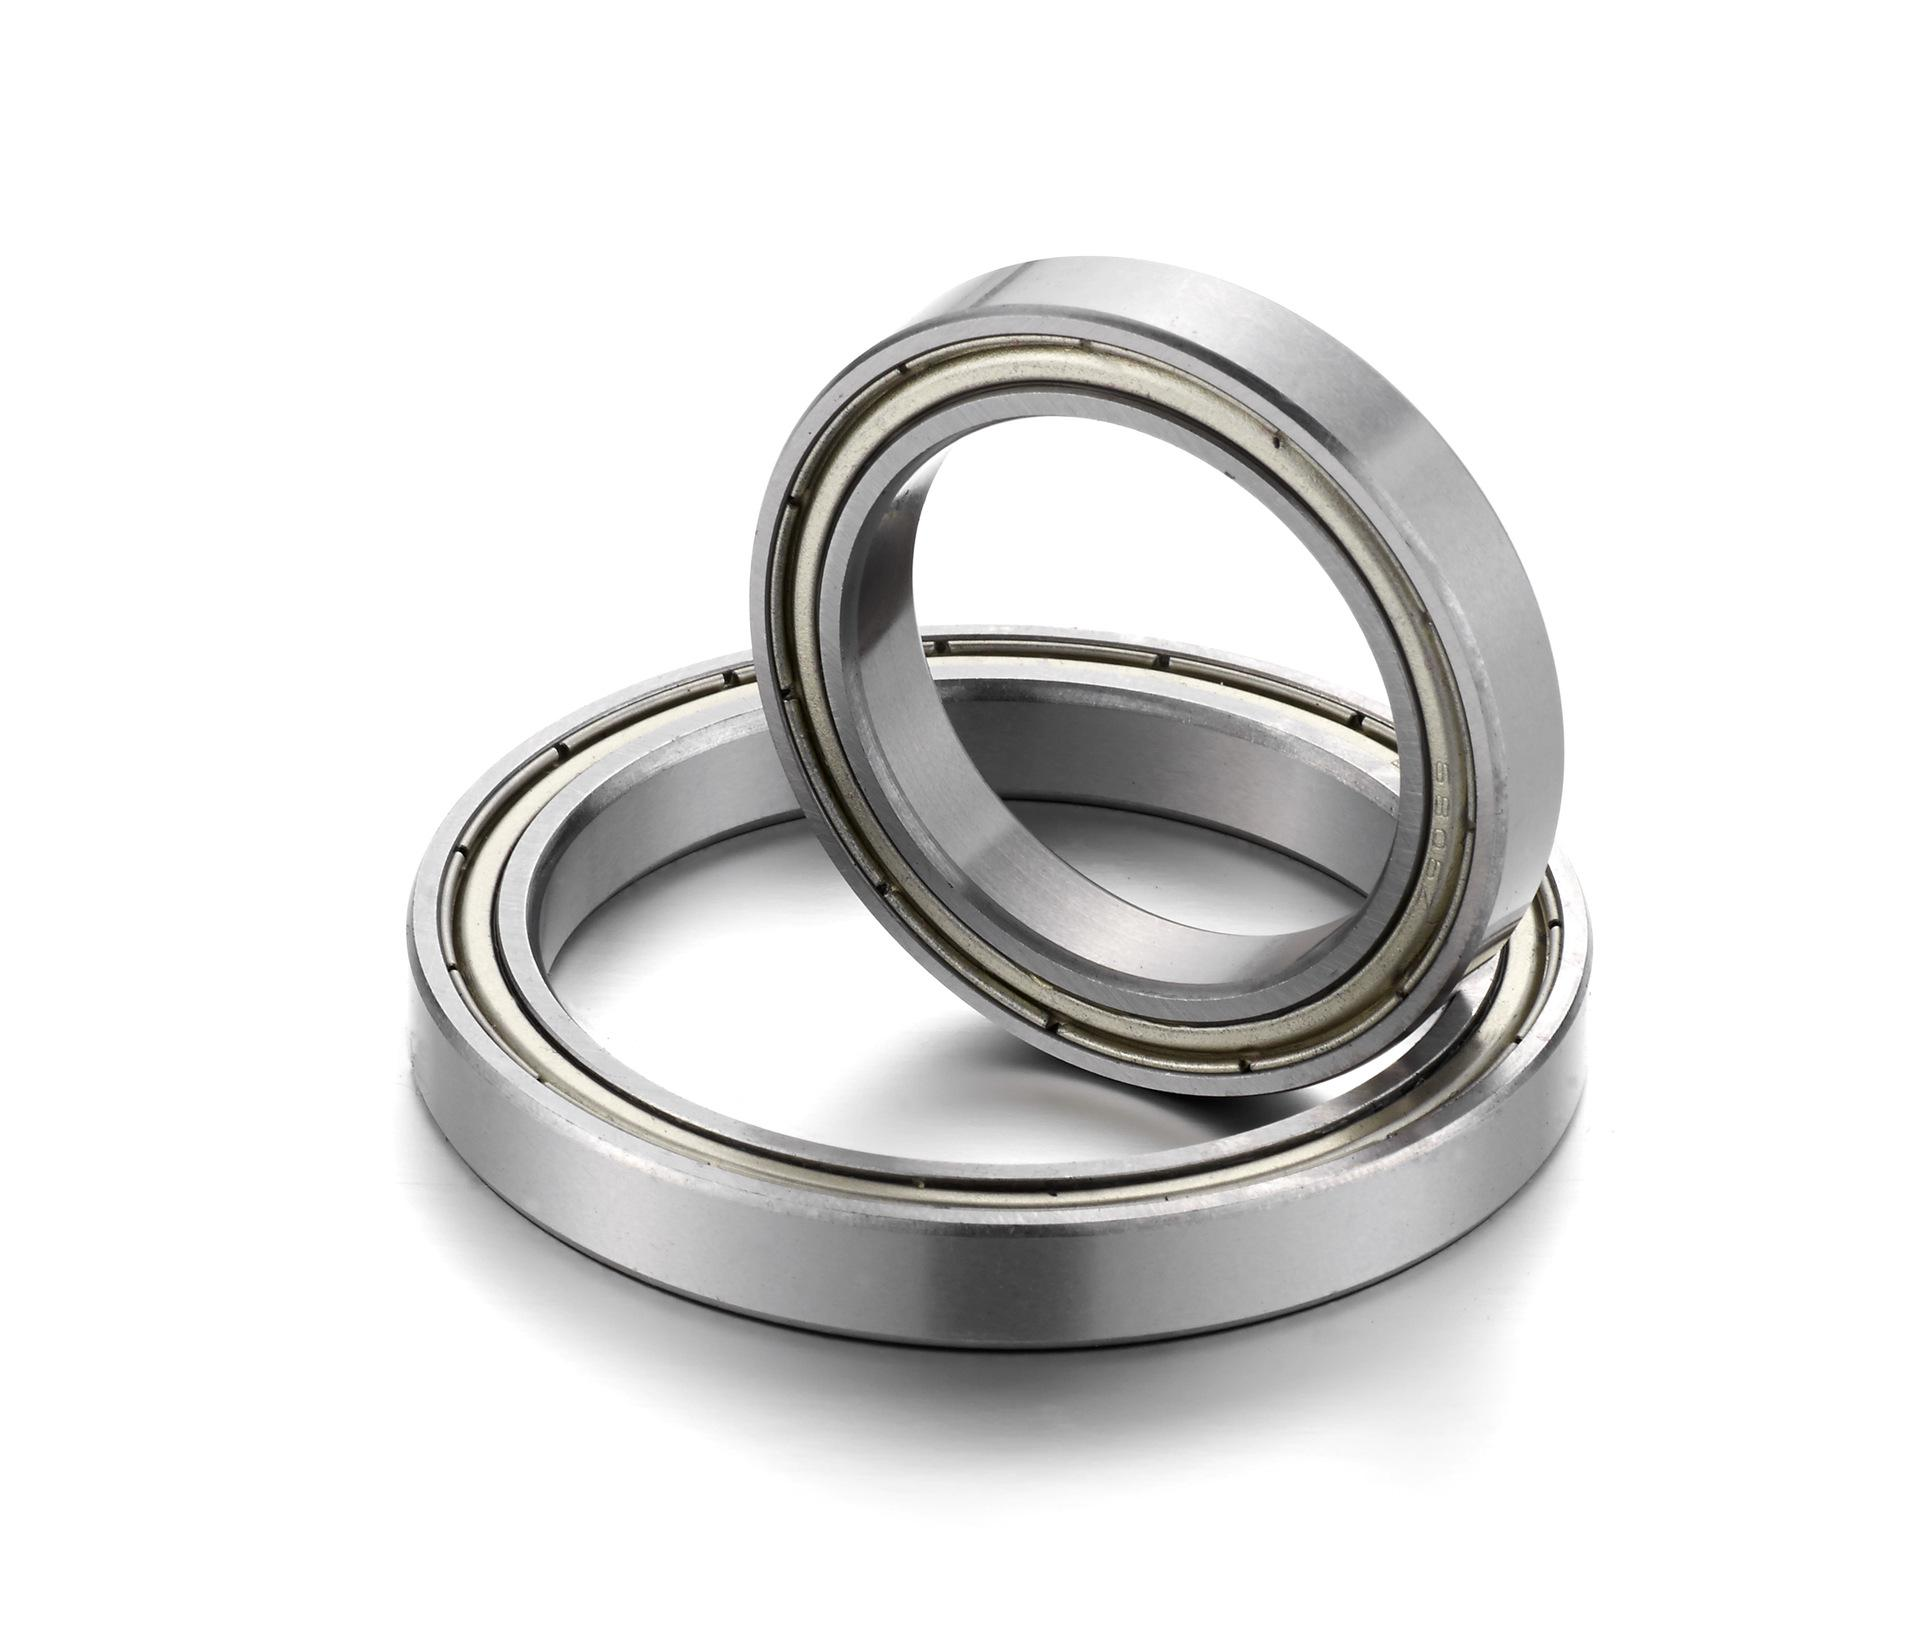 6836 M 180x225x22mm Metric Thin Section Bearings 61836M Brass cage 2018 hot sale time limited steel rolamentos 6821 2rs abec 1 105x130x13mm metric thin section bearings 61821 rs 6821rs